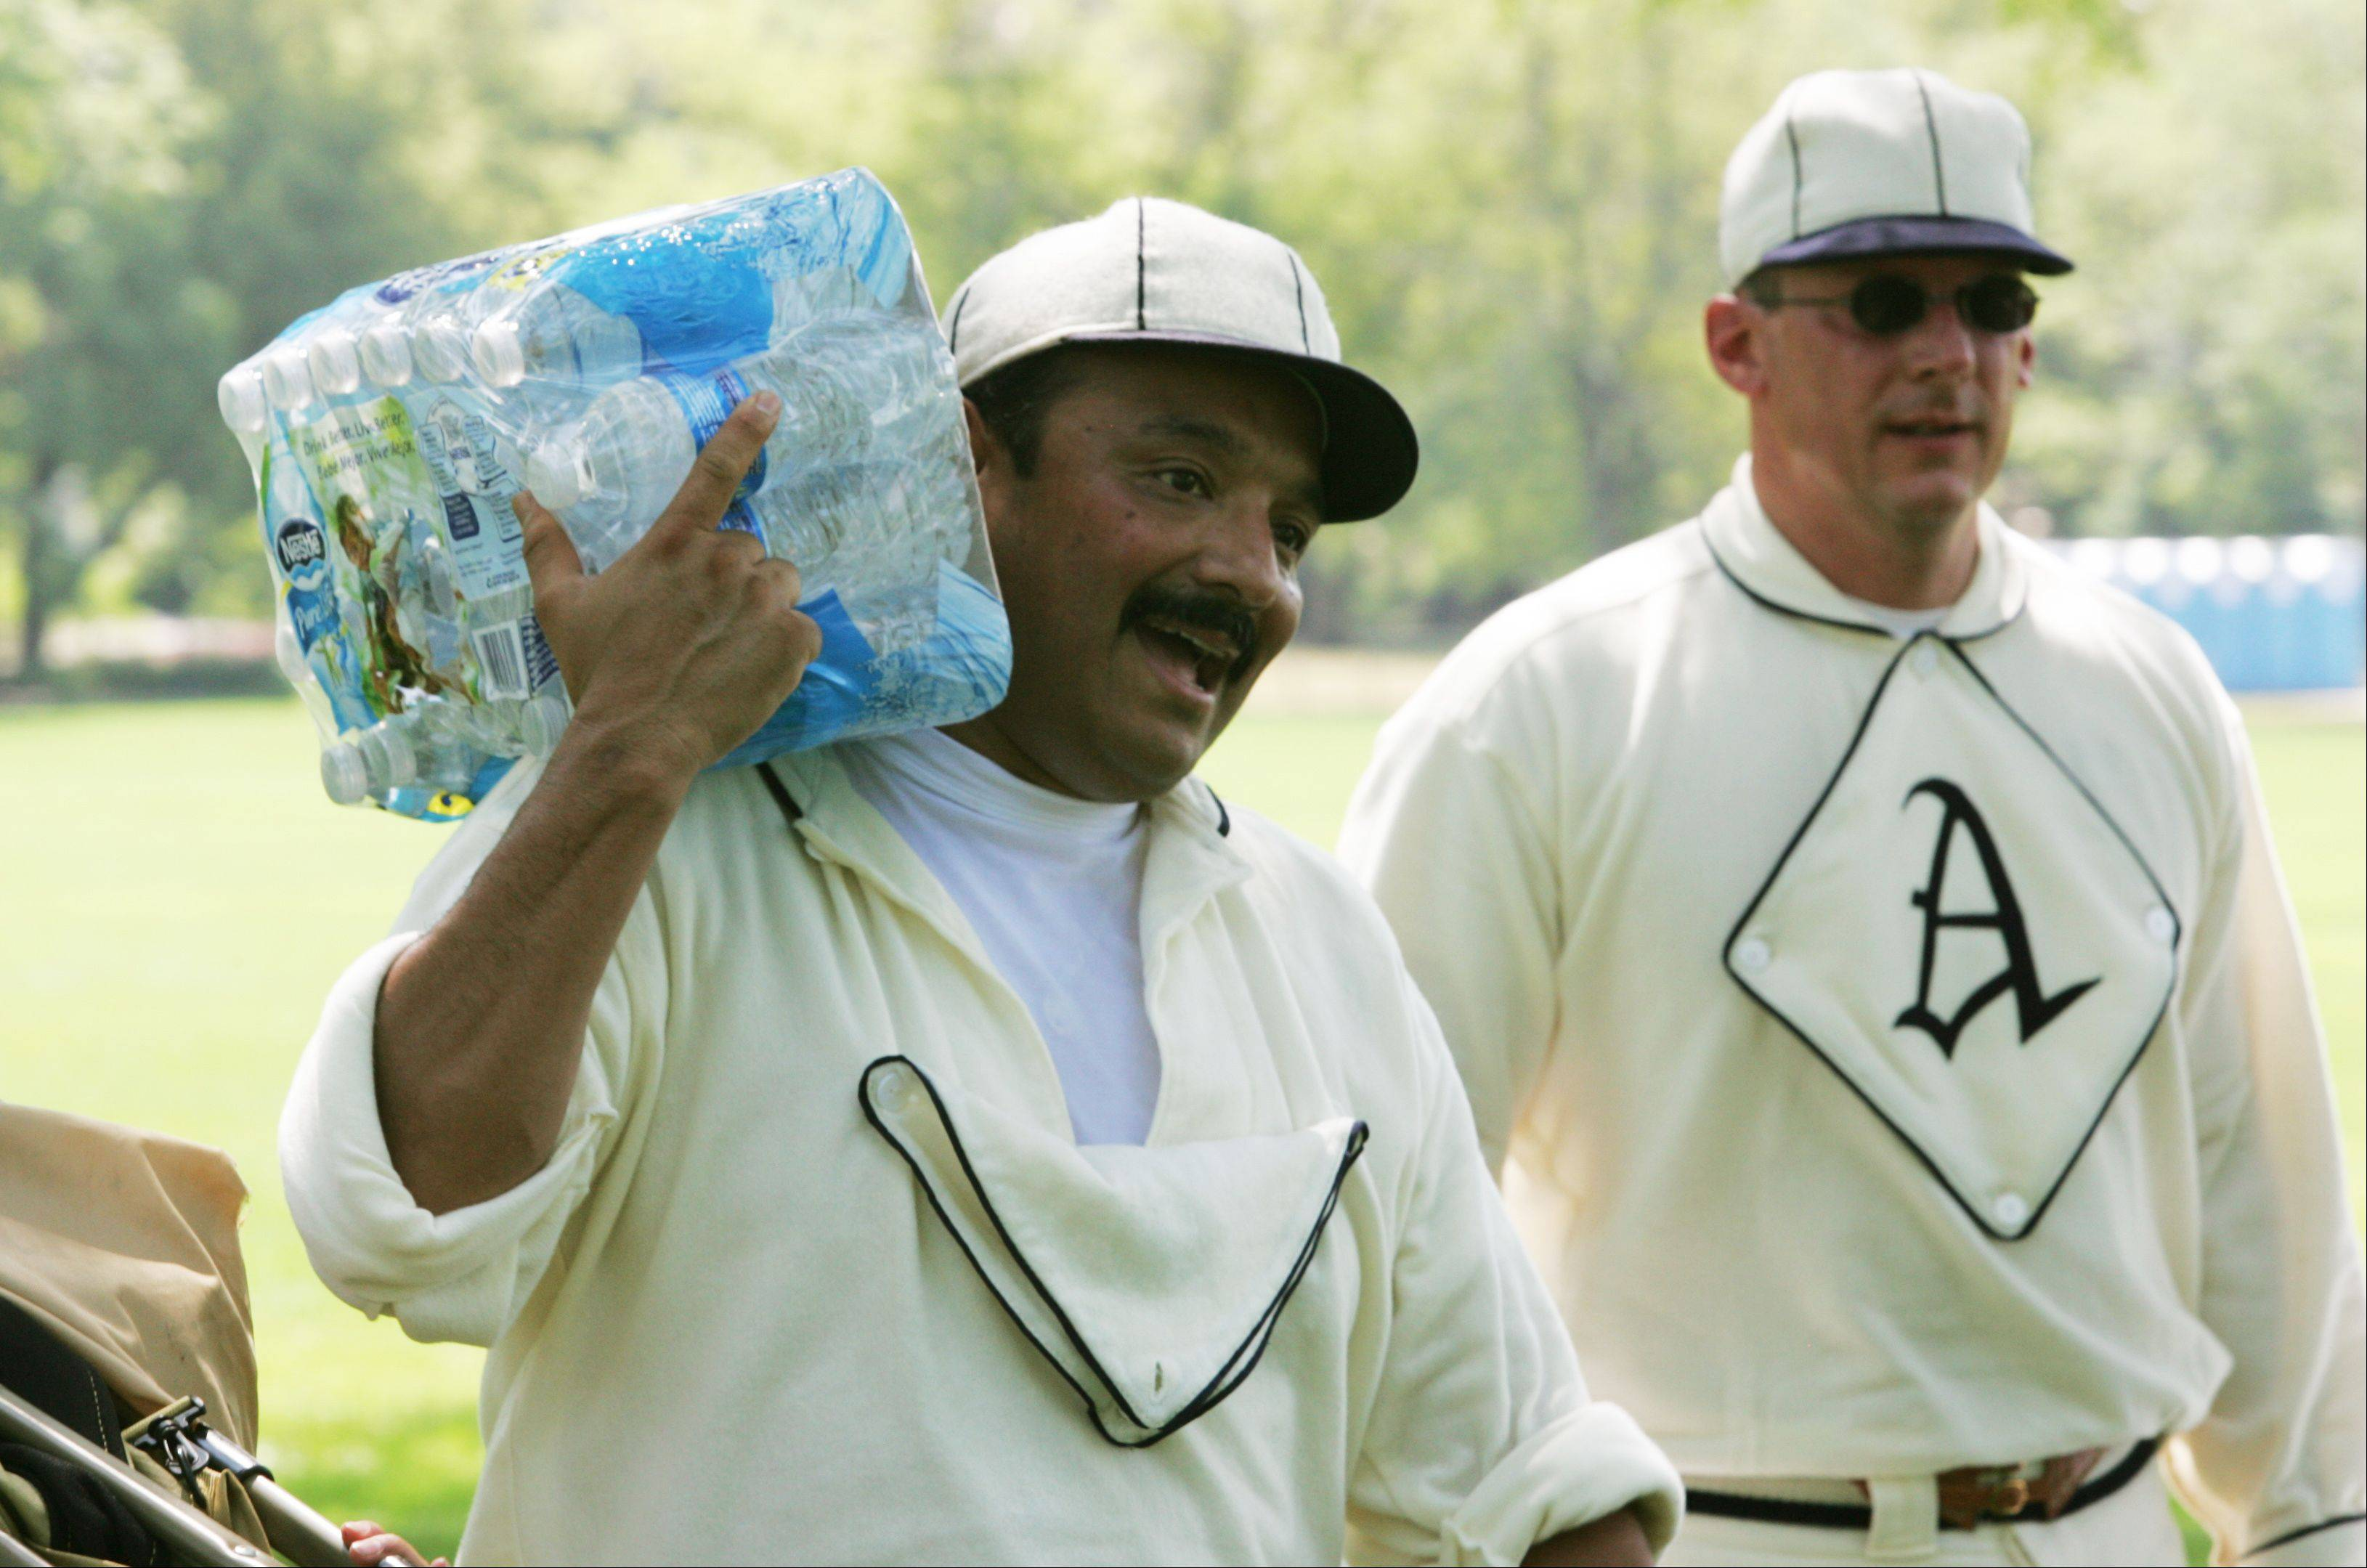 Reynaldo Rivera keeps cool between games during the Northern Illinois Vintage Baseball Tournament held at Cantigny Park in Wheaton. Rivera and teammate Paul Nelson, right, play for the Aurora Town Club Vintage Baseball team.